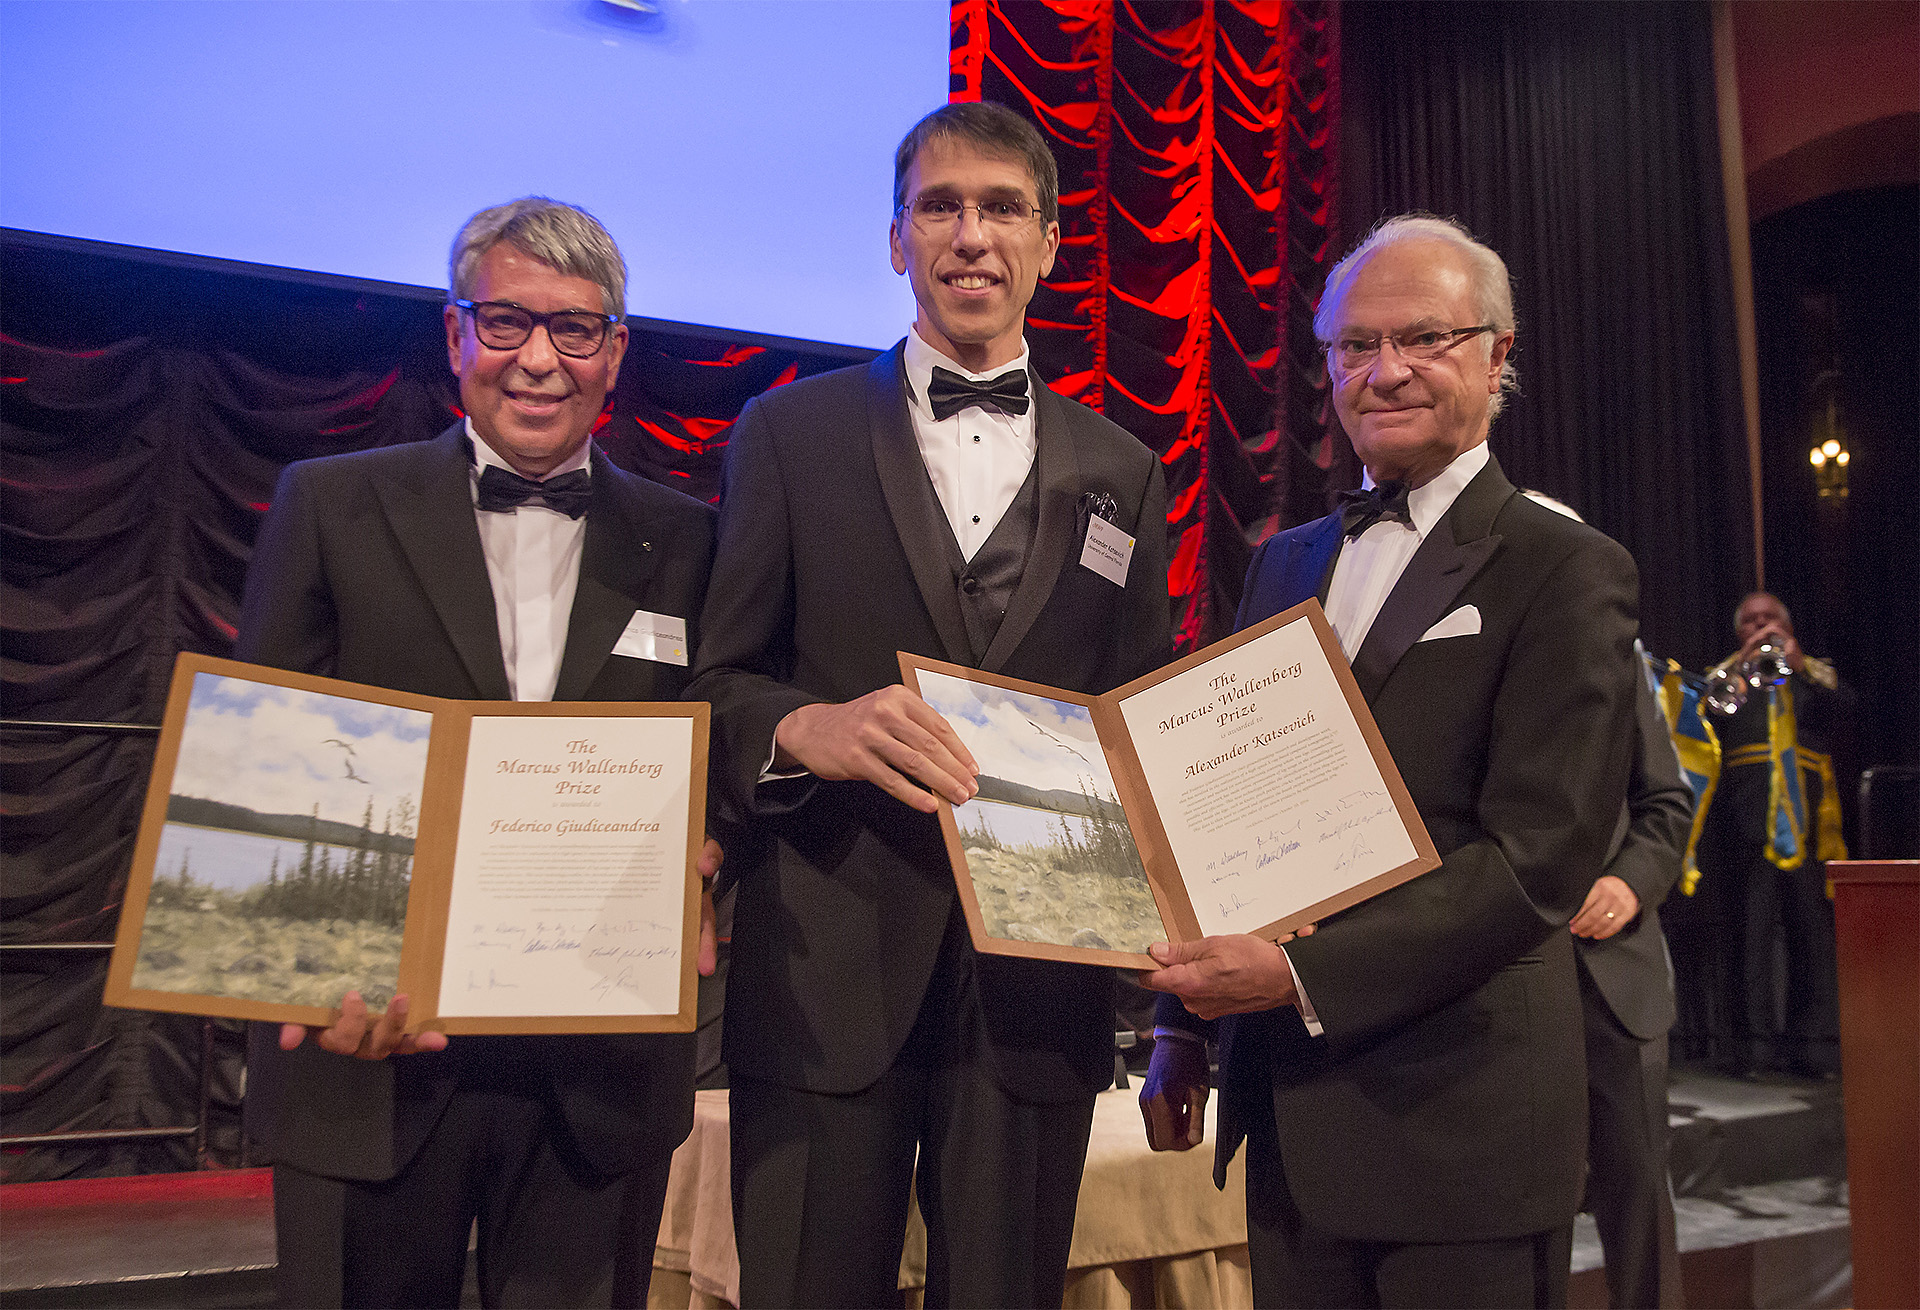 Marcus Wallenberg Prize laureates Federico Giudiceandrea and Alexander Katsevich recieve their diplomas from His Majesty the King of Sweden.